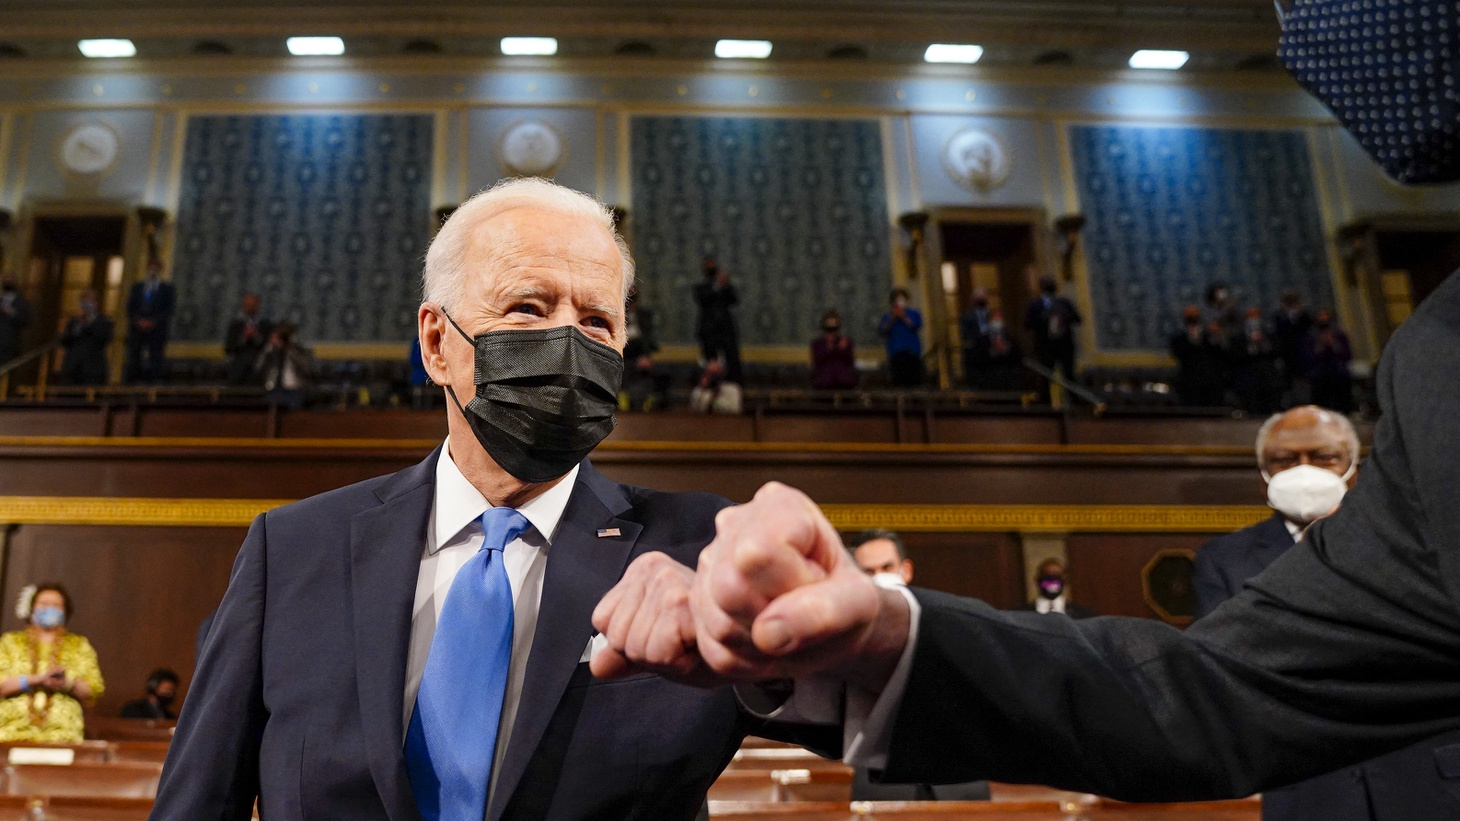 President Joe Biden fist bumps Sen. Patrick J. Leahy (D-Vt.) as he arrives for his the address to a joint session of Congress, with Vice President Kamala Harris and House Speaker Nancy Pelosi (D-Calif.) on the dais behind him, on Wednesday, April 28, 2021. Biden spoke to a nation seeking to emerge from twin crises of pandemic and economic slide in his first speech to a joint session of Congress.